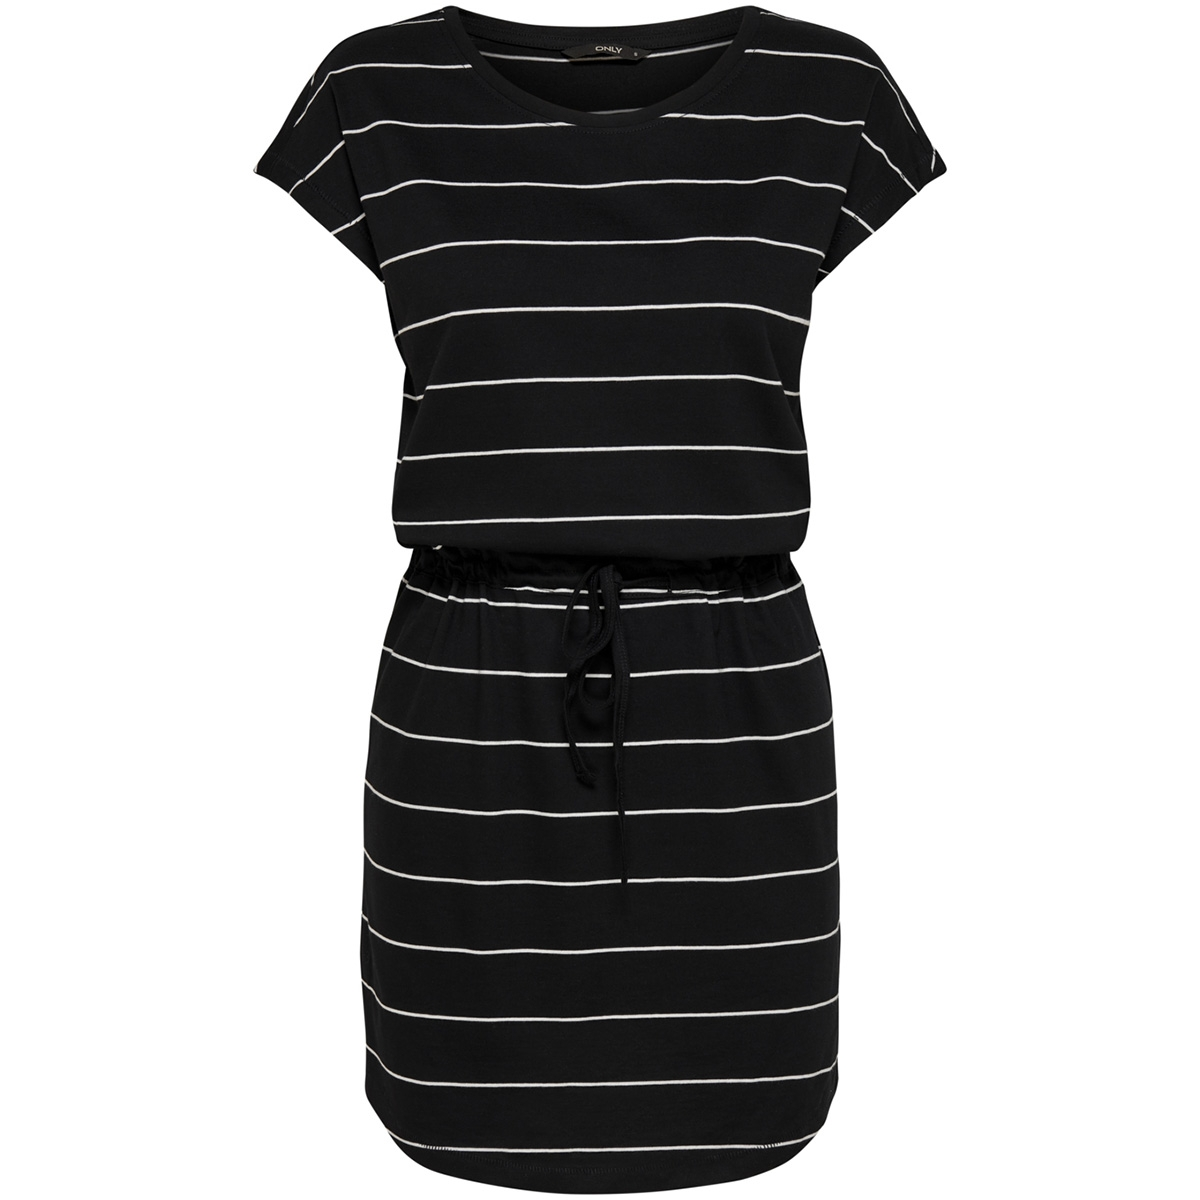 onlmay s/s dress noos 15153021 only jurk black/thin stripe